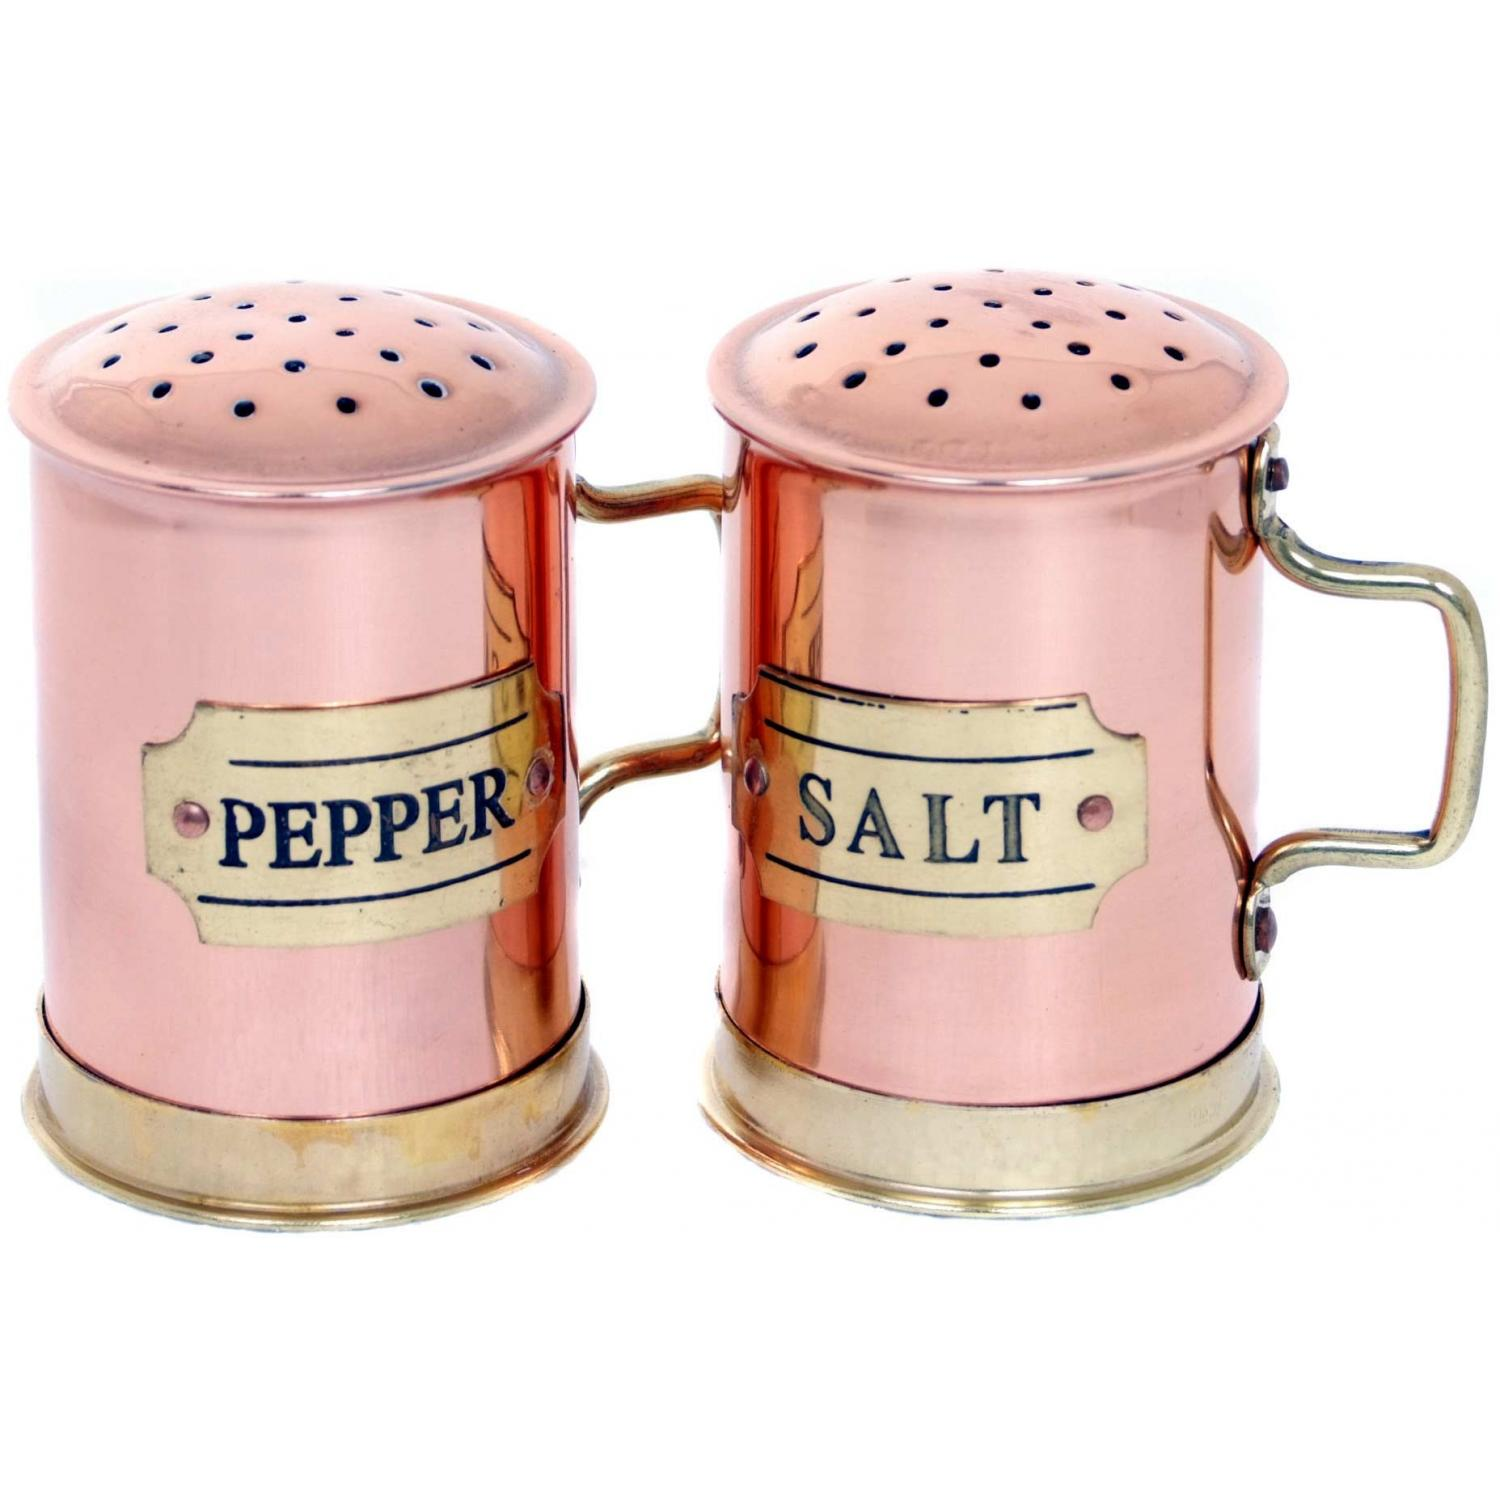 Old Dutch Copper Salt And Pepper Shakers 2.75 Inch